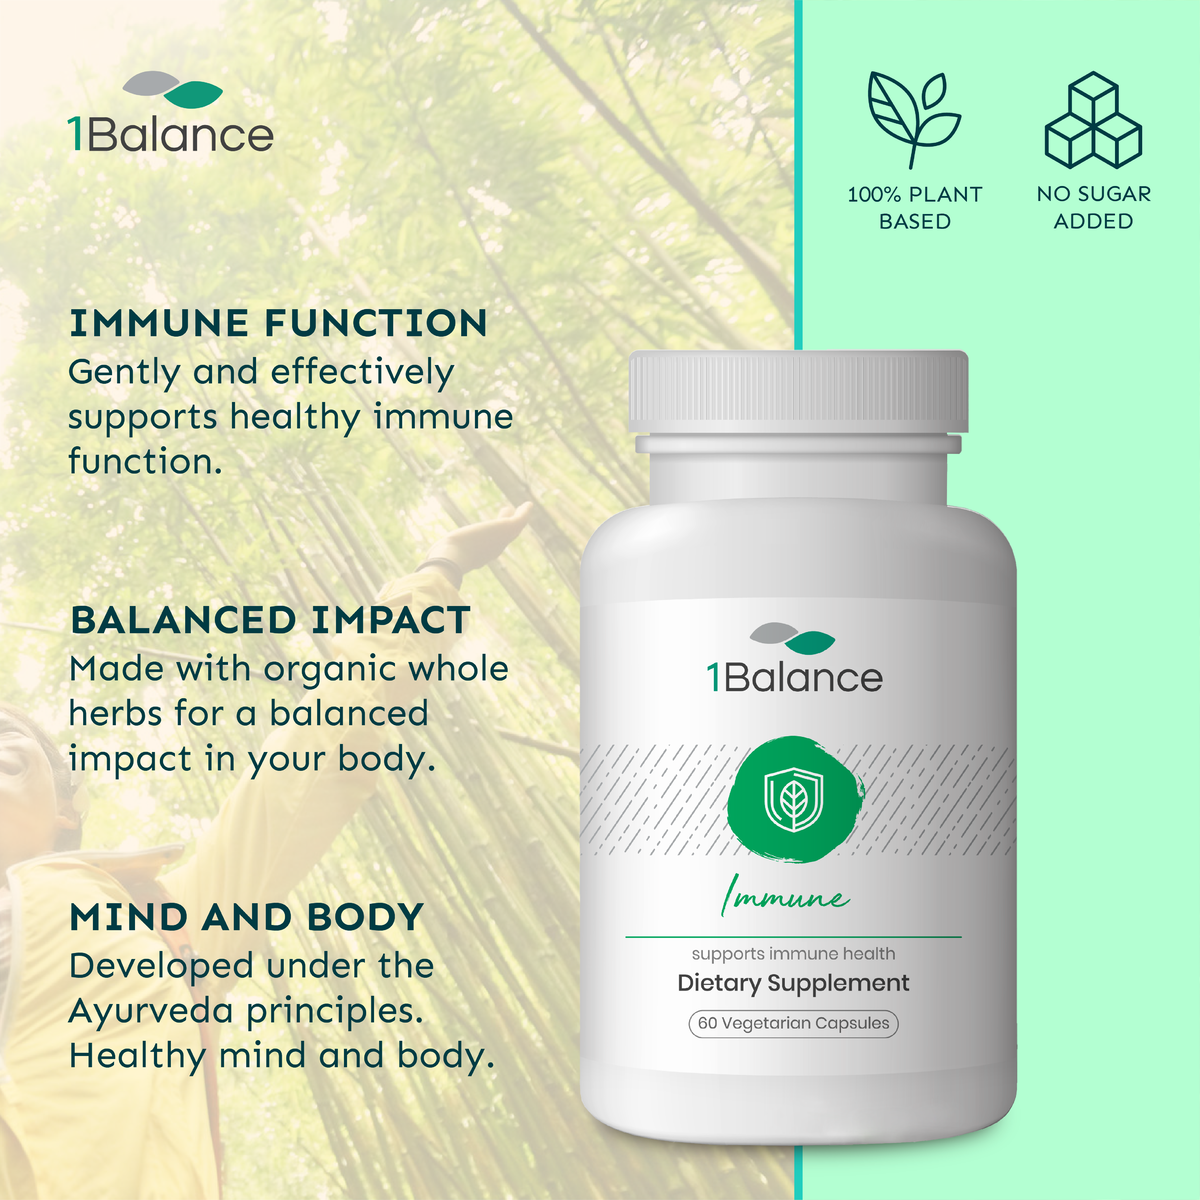 1Balance Immune, Contains 9 Ayurvedic Herbs Including Turmeric and Indian Tinospora, Supports Healthy Immune Function, Organic Whole-Herb Supplements (60 Vegetarian Capsules)